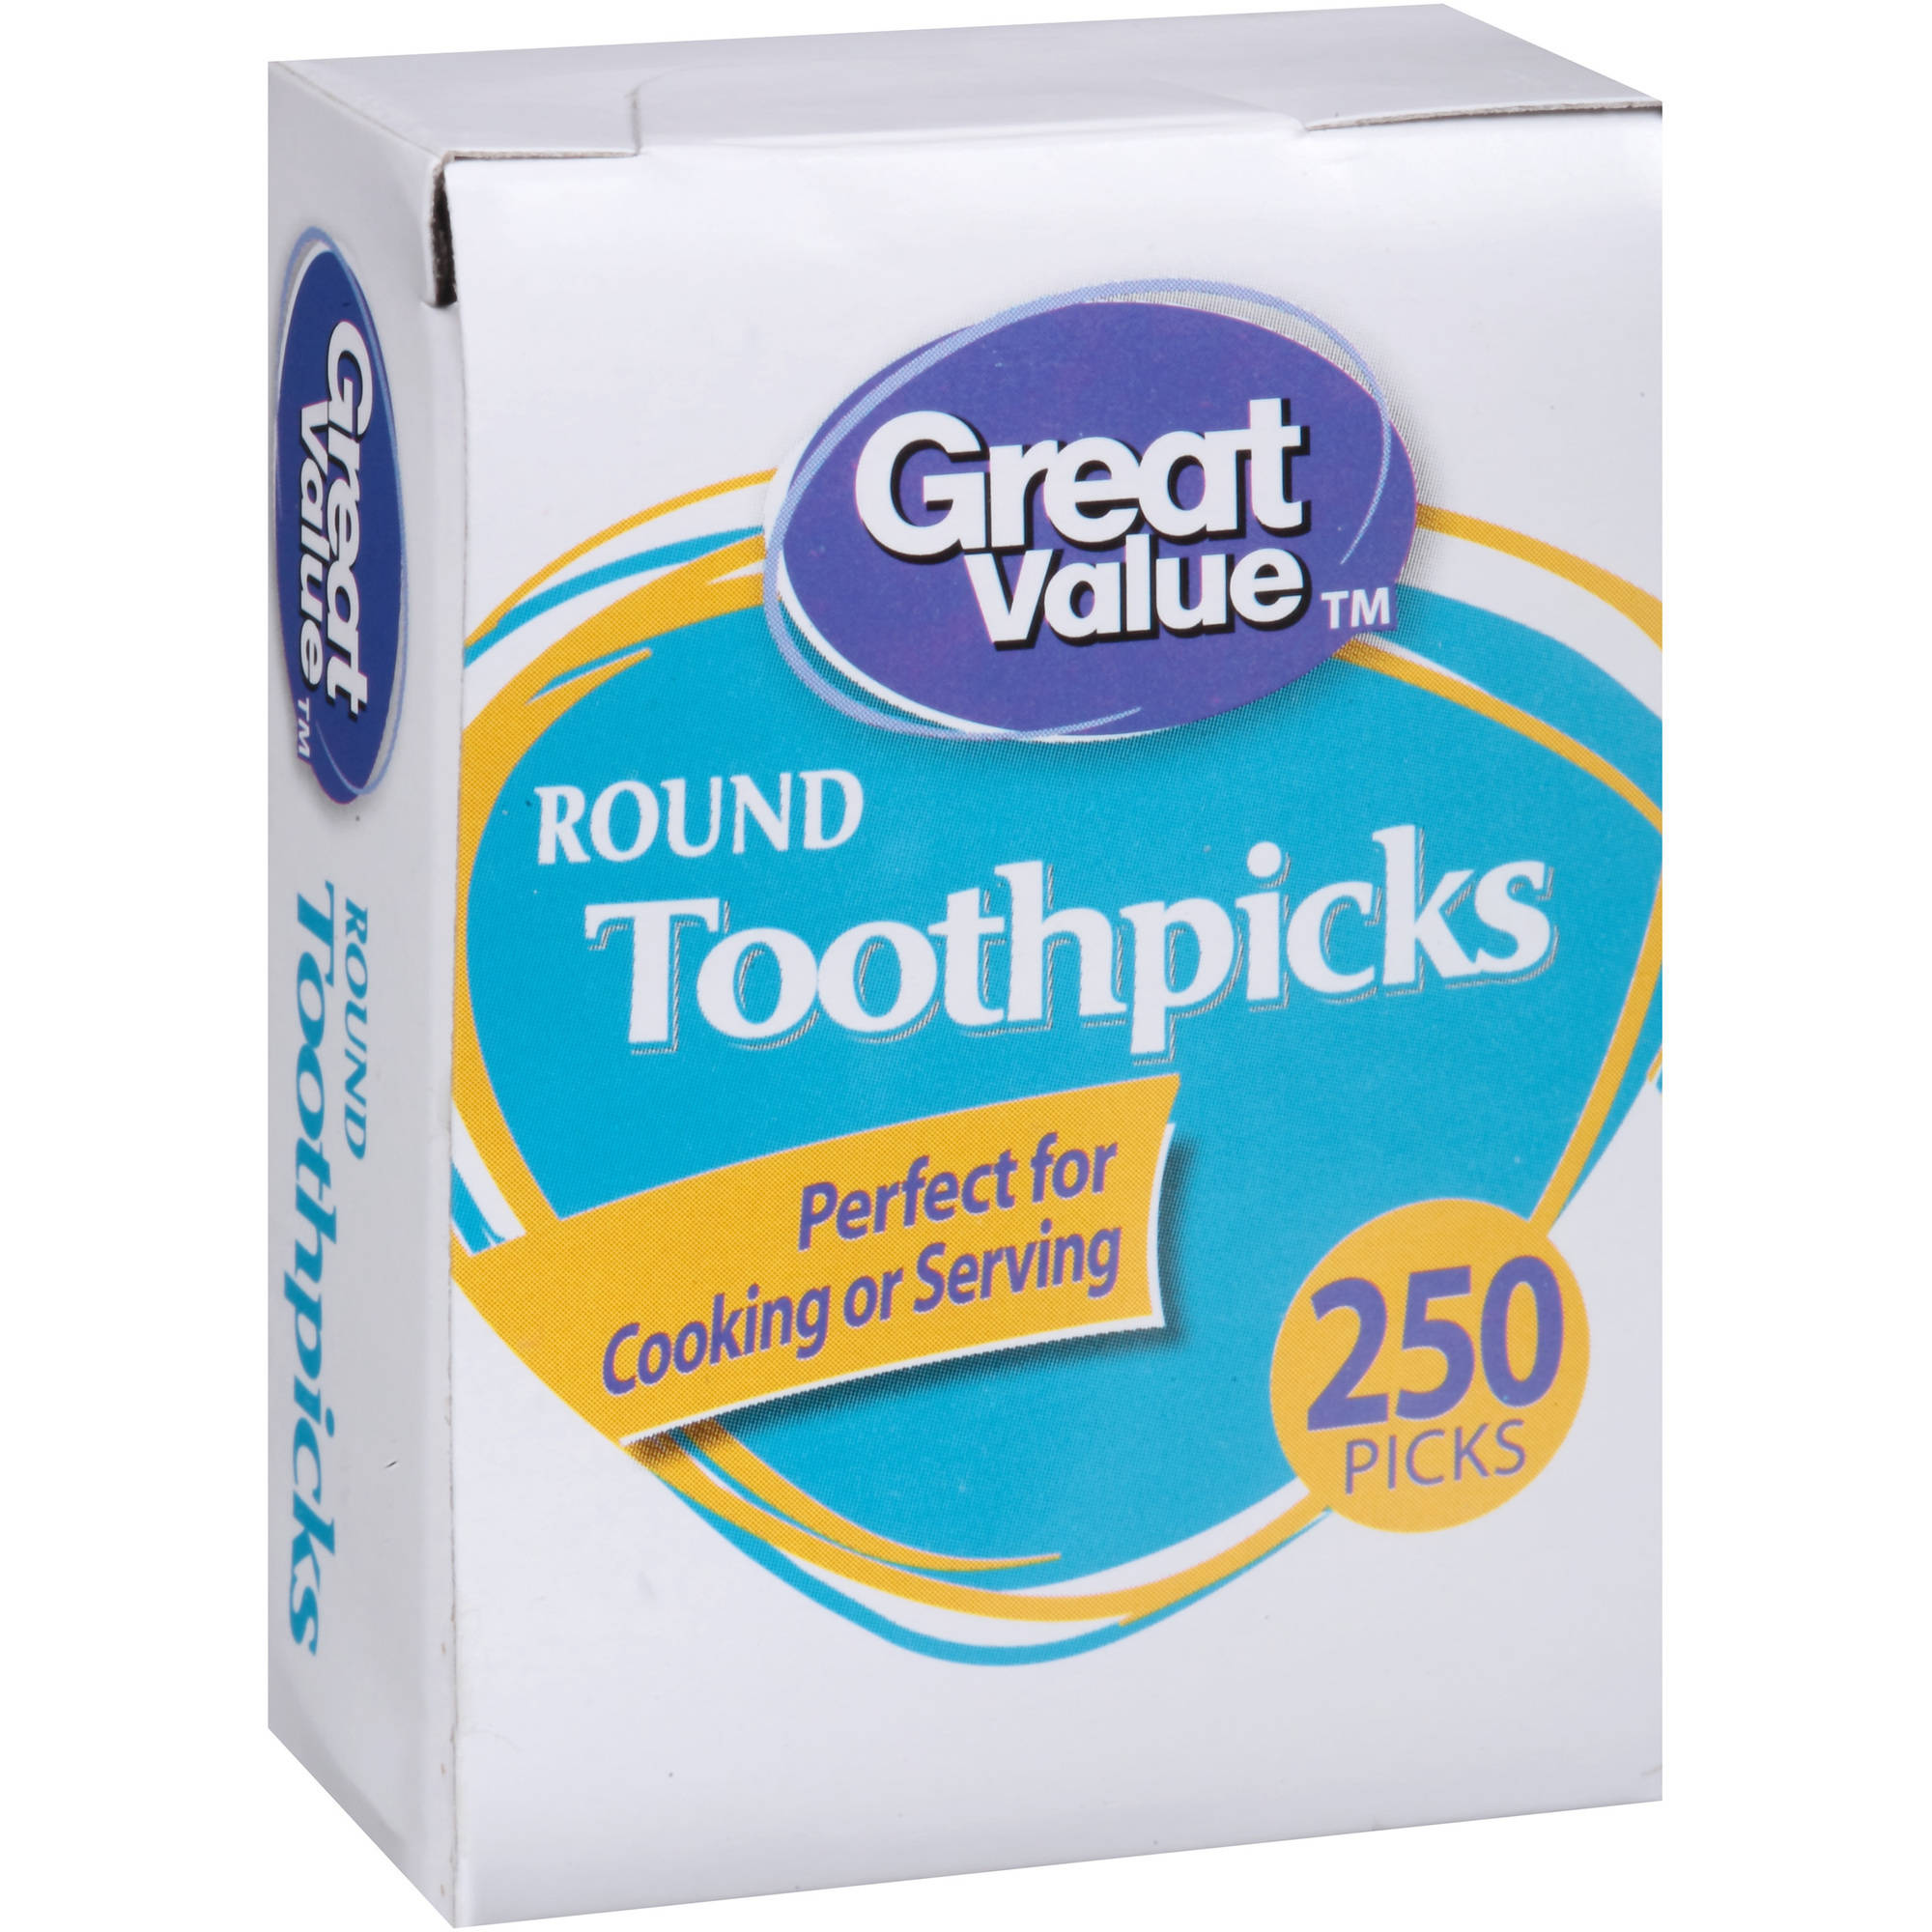 Great Value Round Toothpicks, 250 count